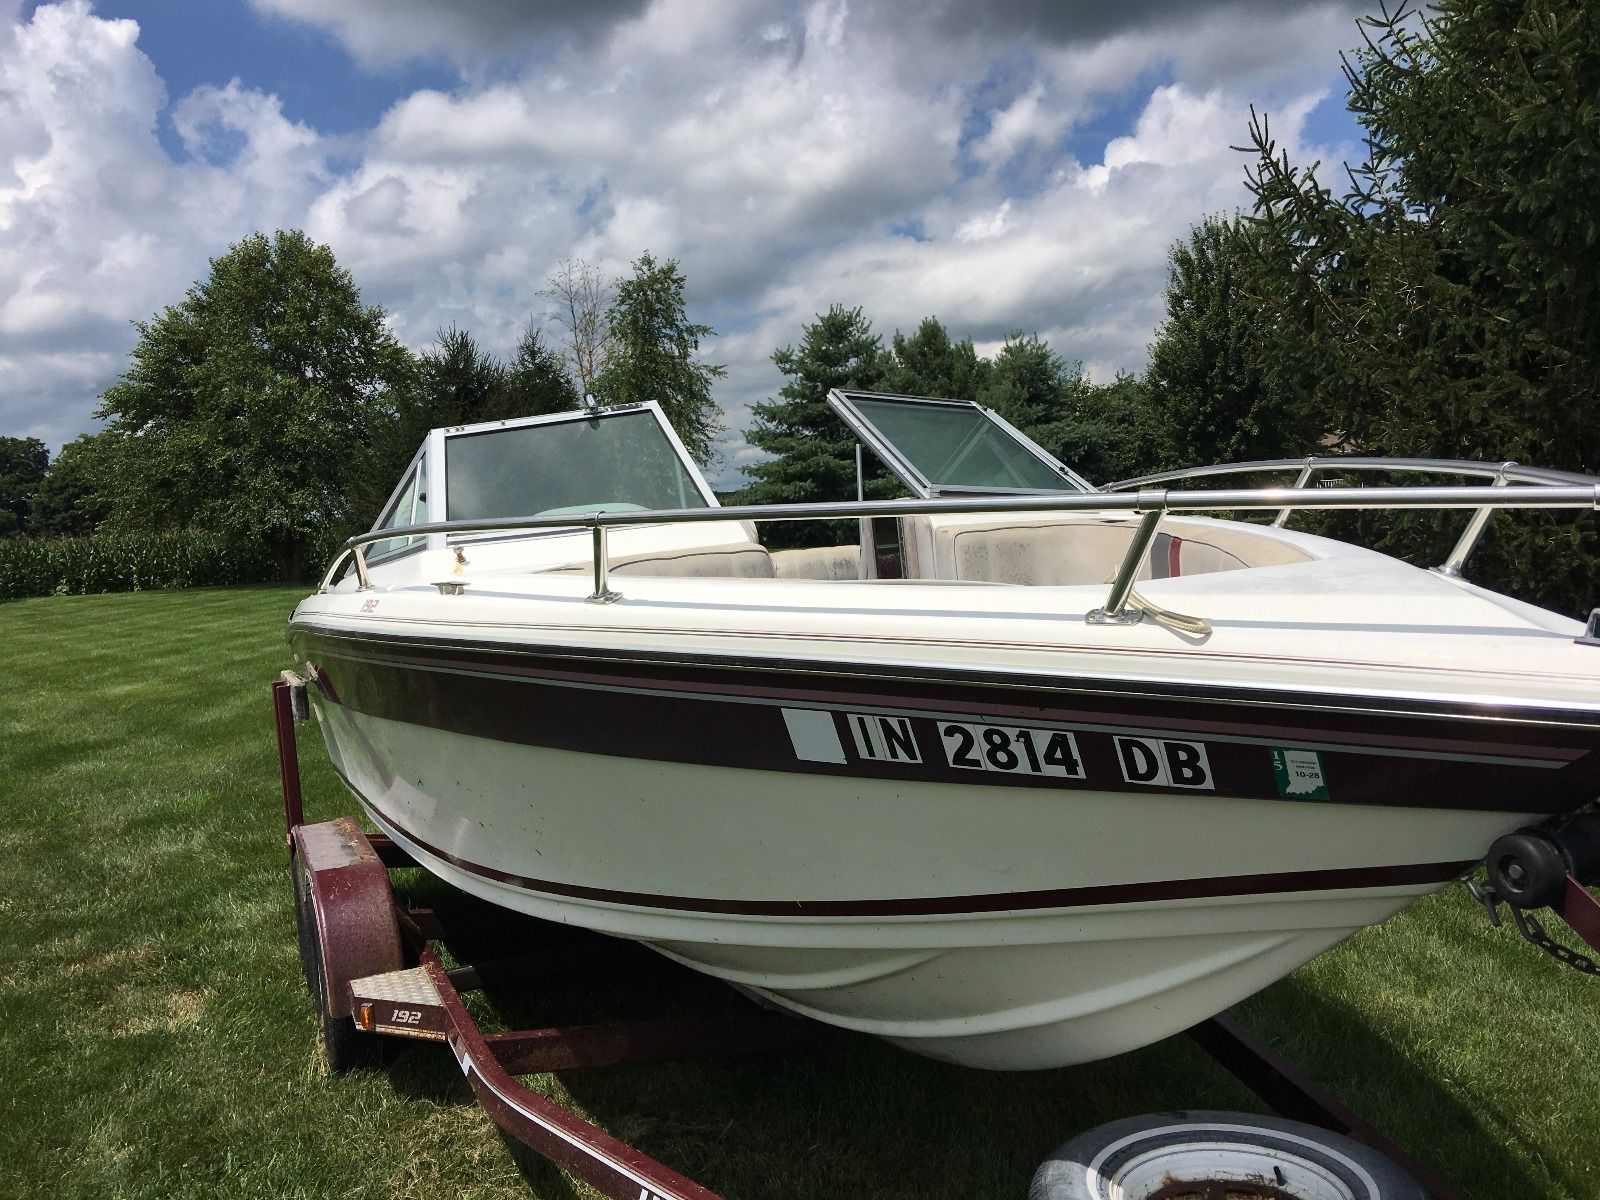 boats.com - new and used boats for sale #everythingboats